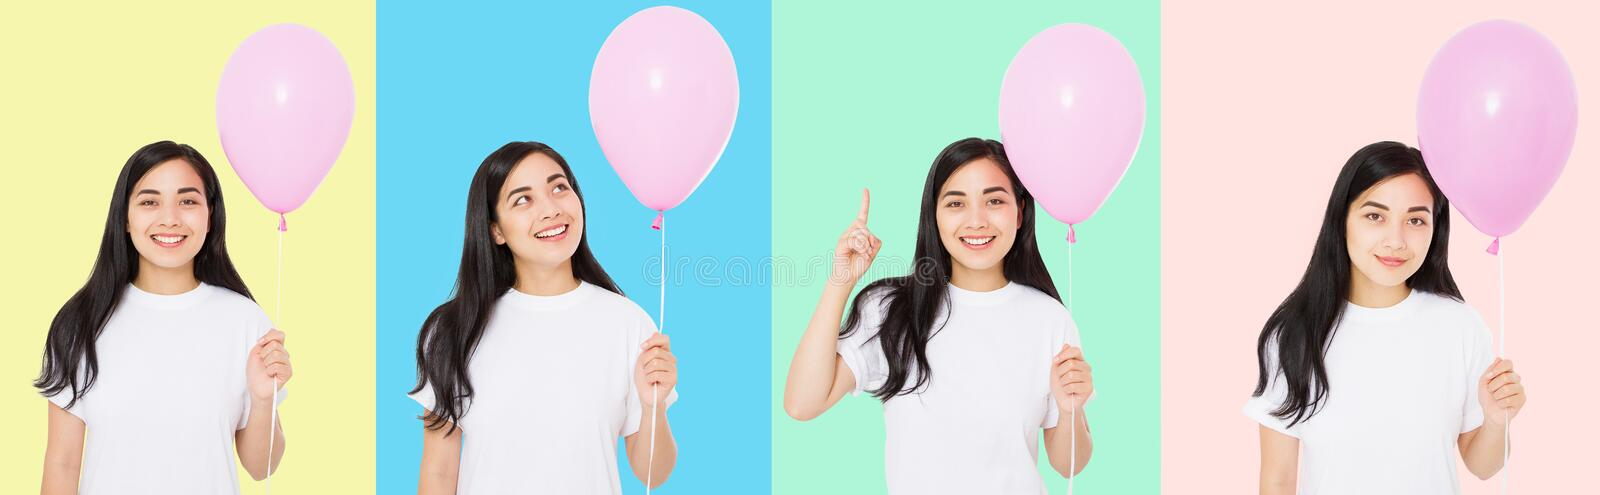 Happy birthday. Balloon party collage. Happy asian girl with balloons isolated on white colorful background. Copy space. Blank. Template t shirt royalty free stock photo